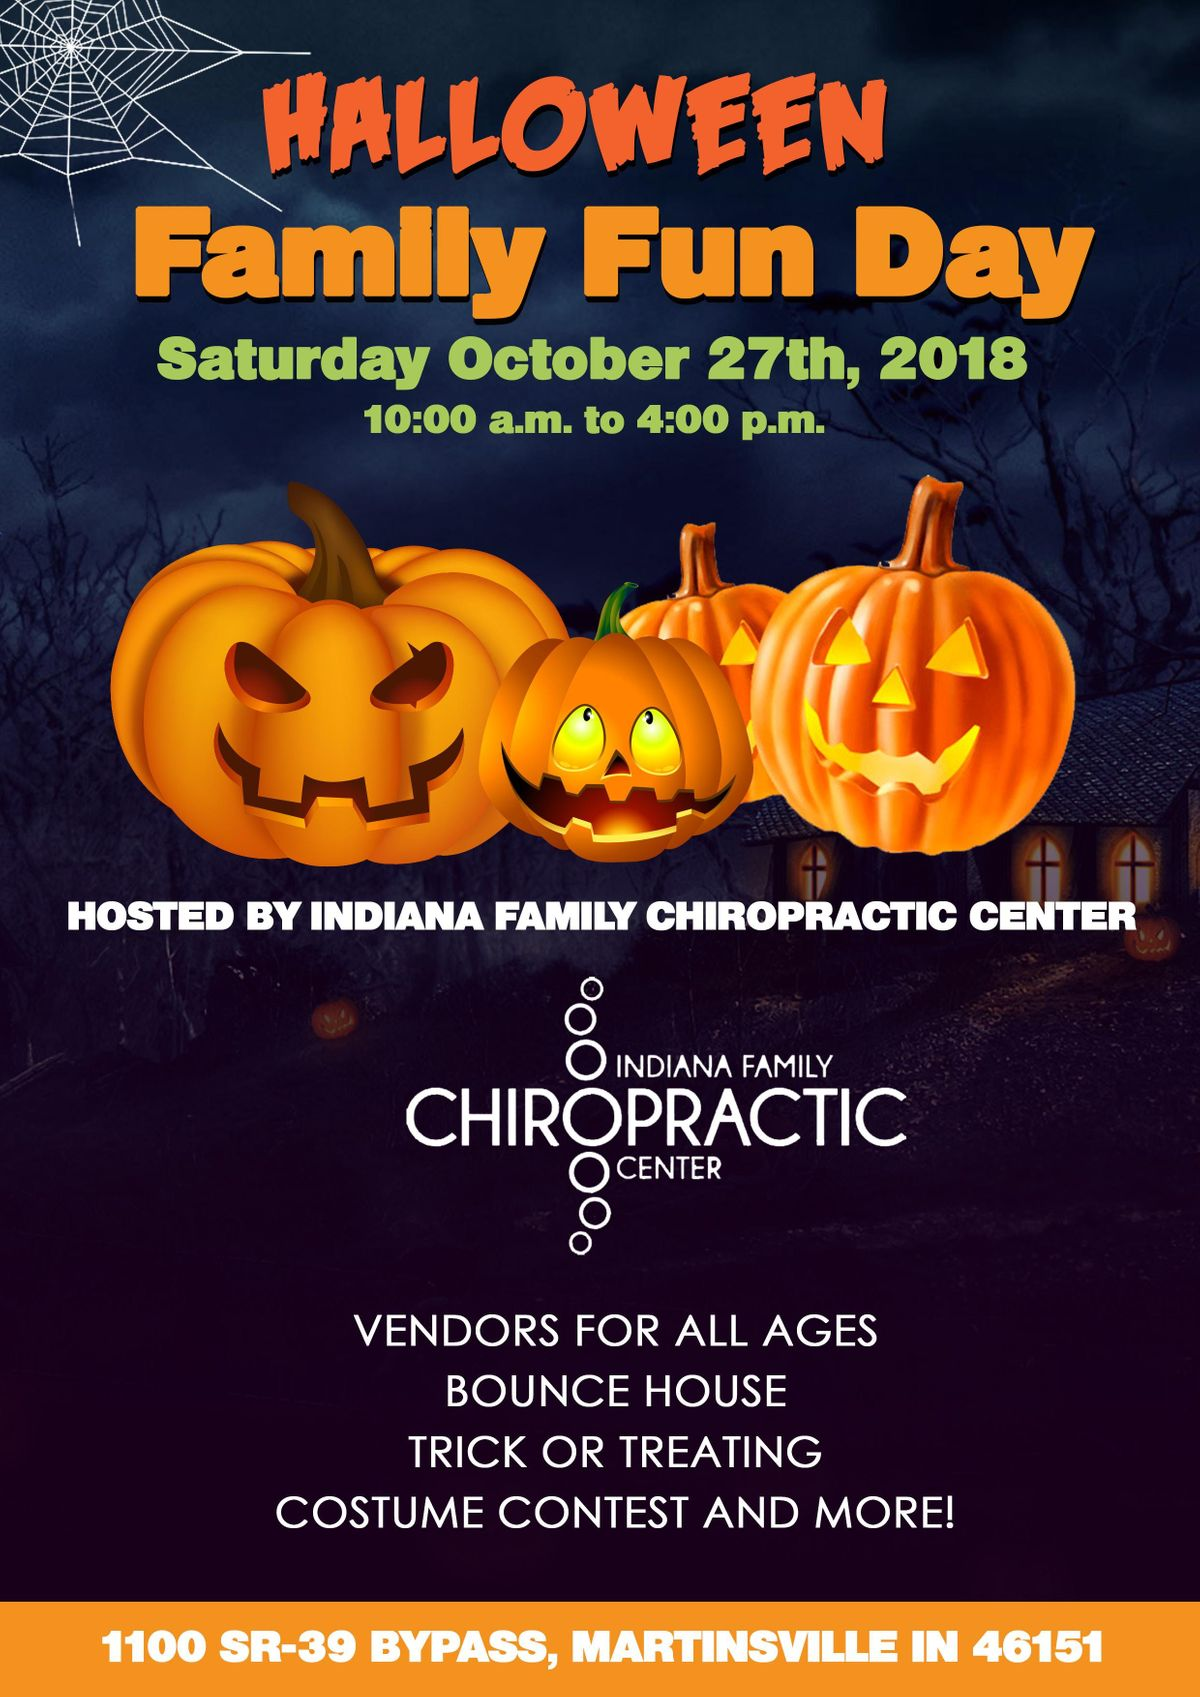 halloween family fun day at indiana family chiropractic center